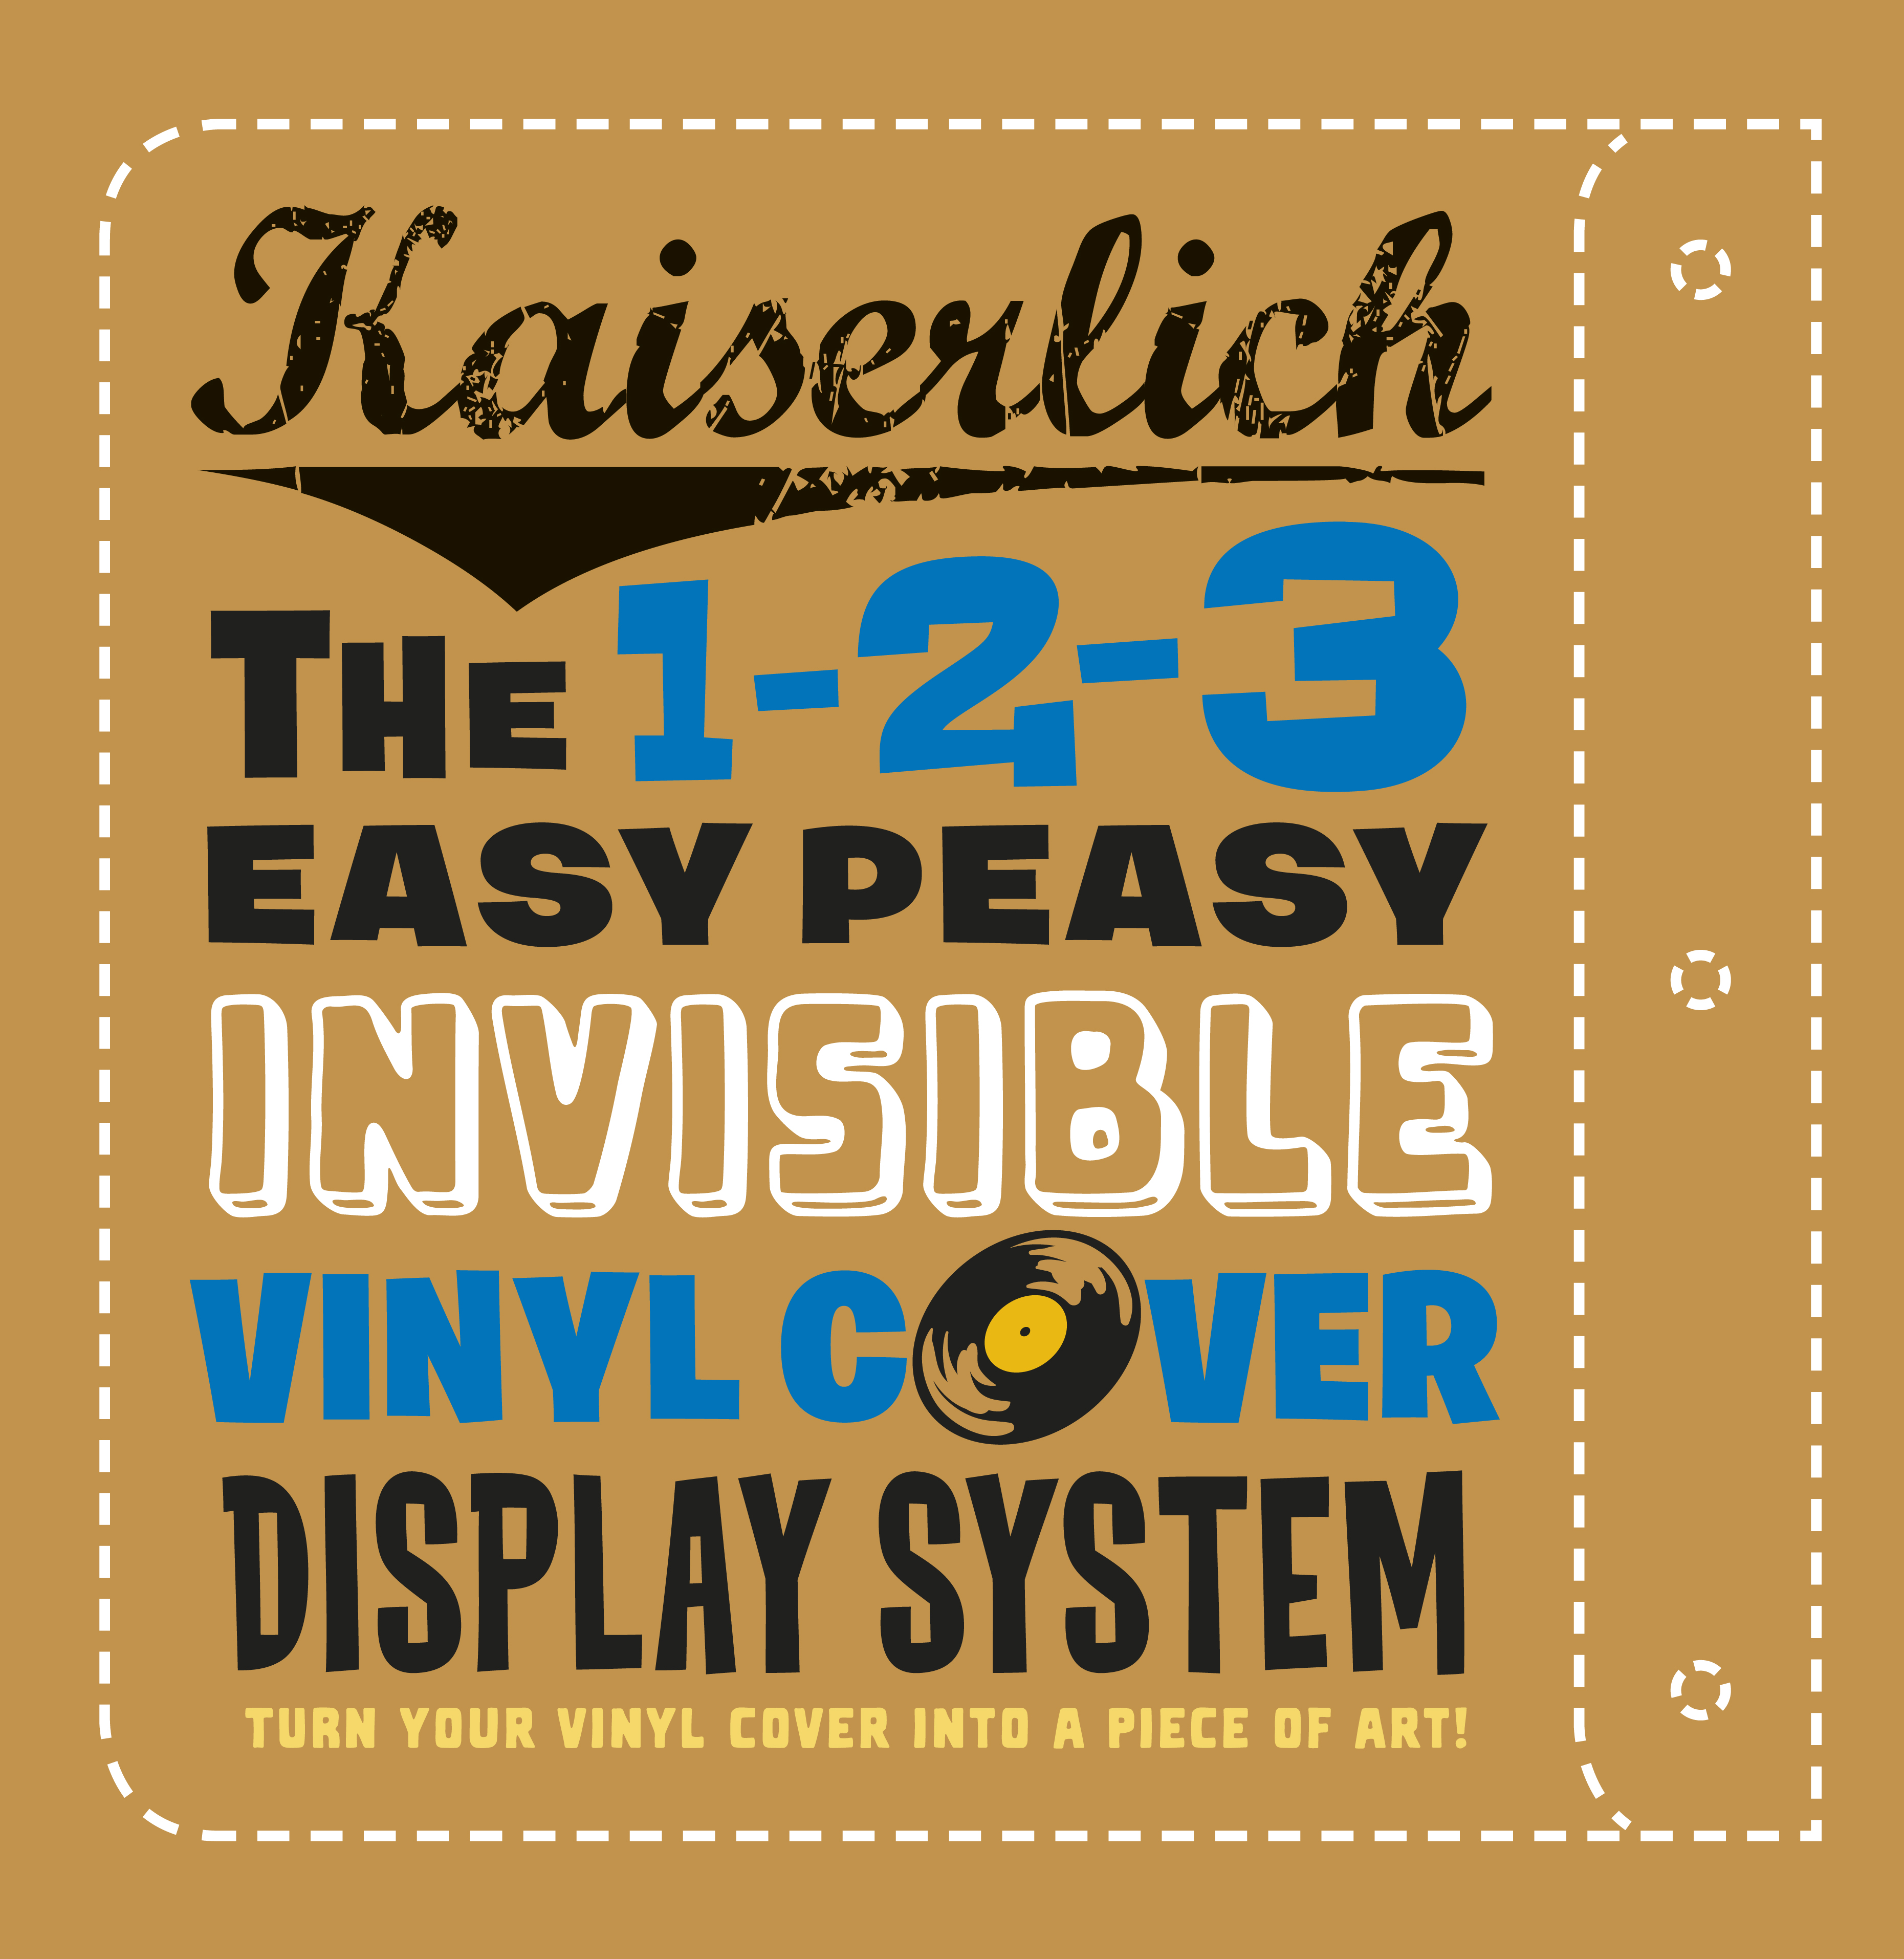 Kaiserlich, Vinyl Cover Display_5